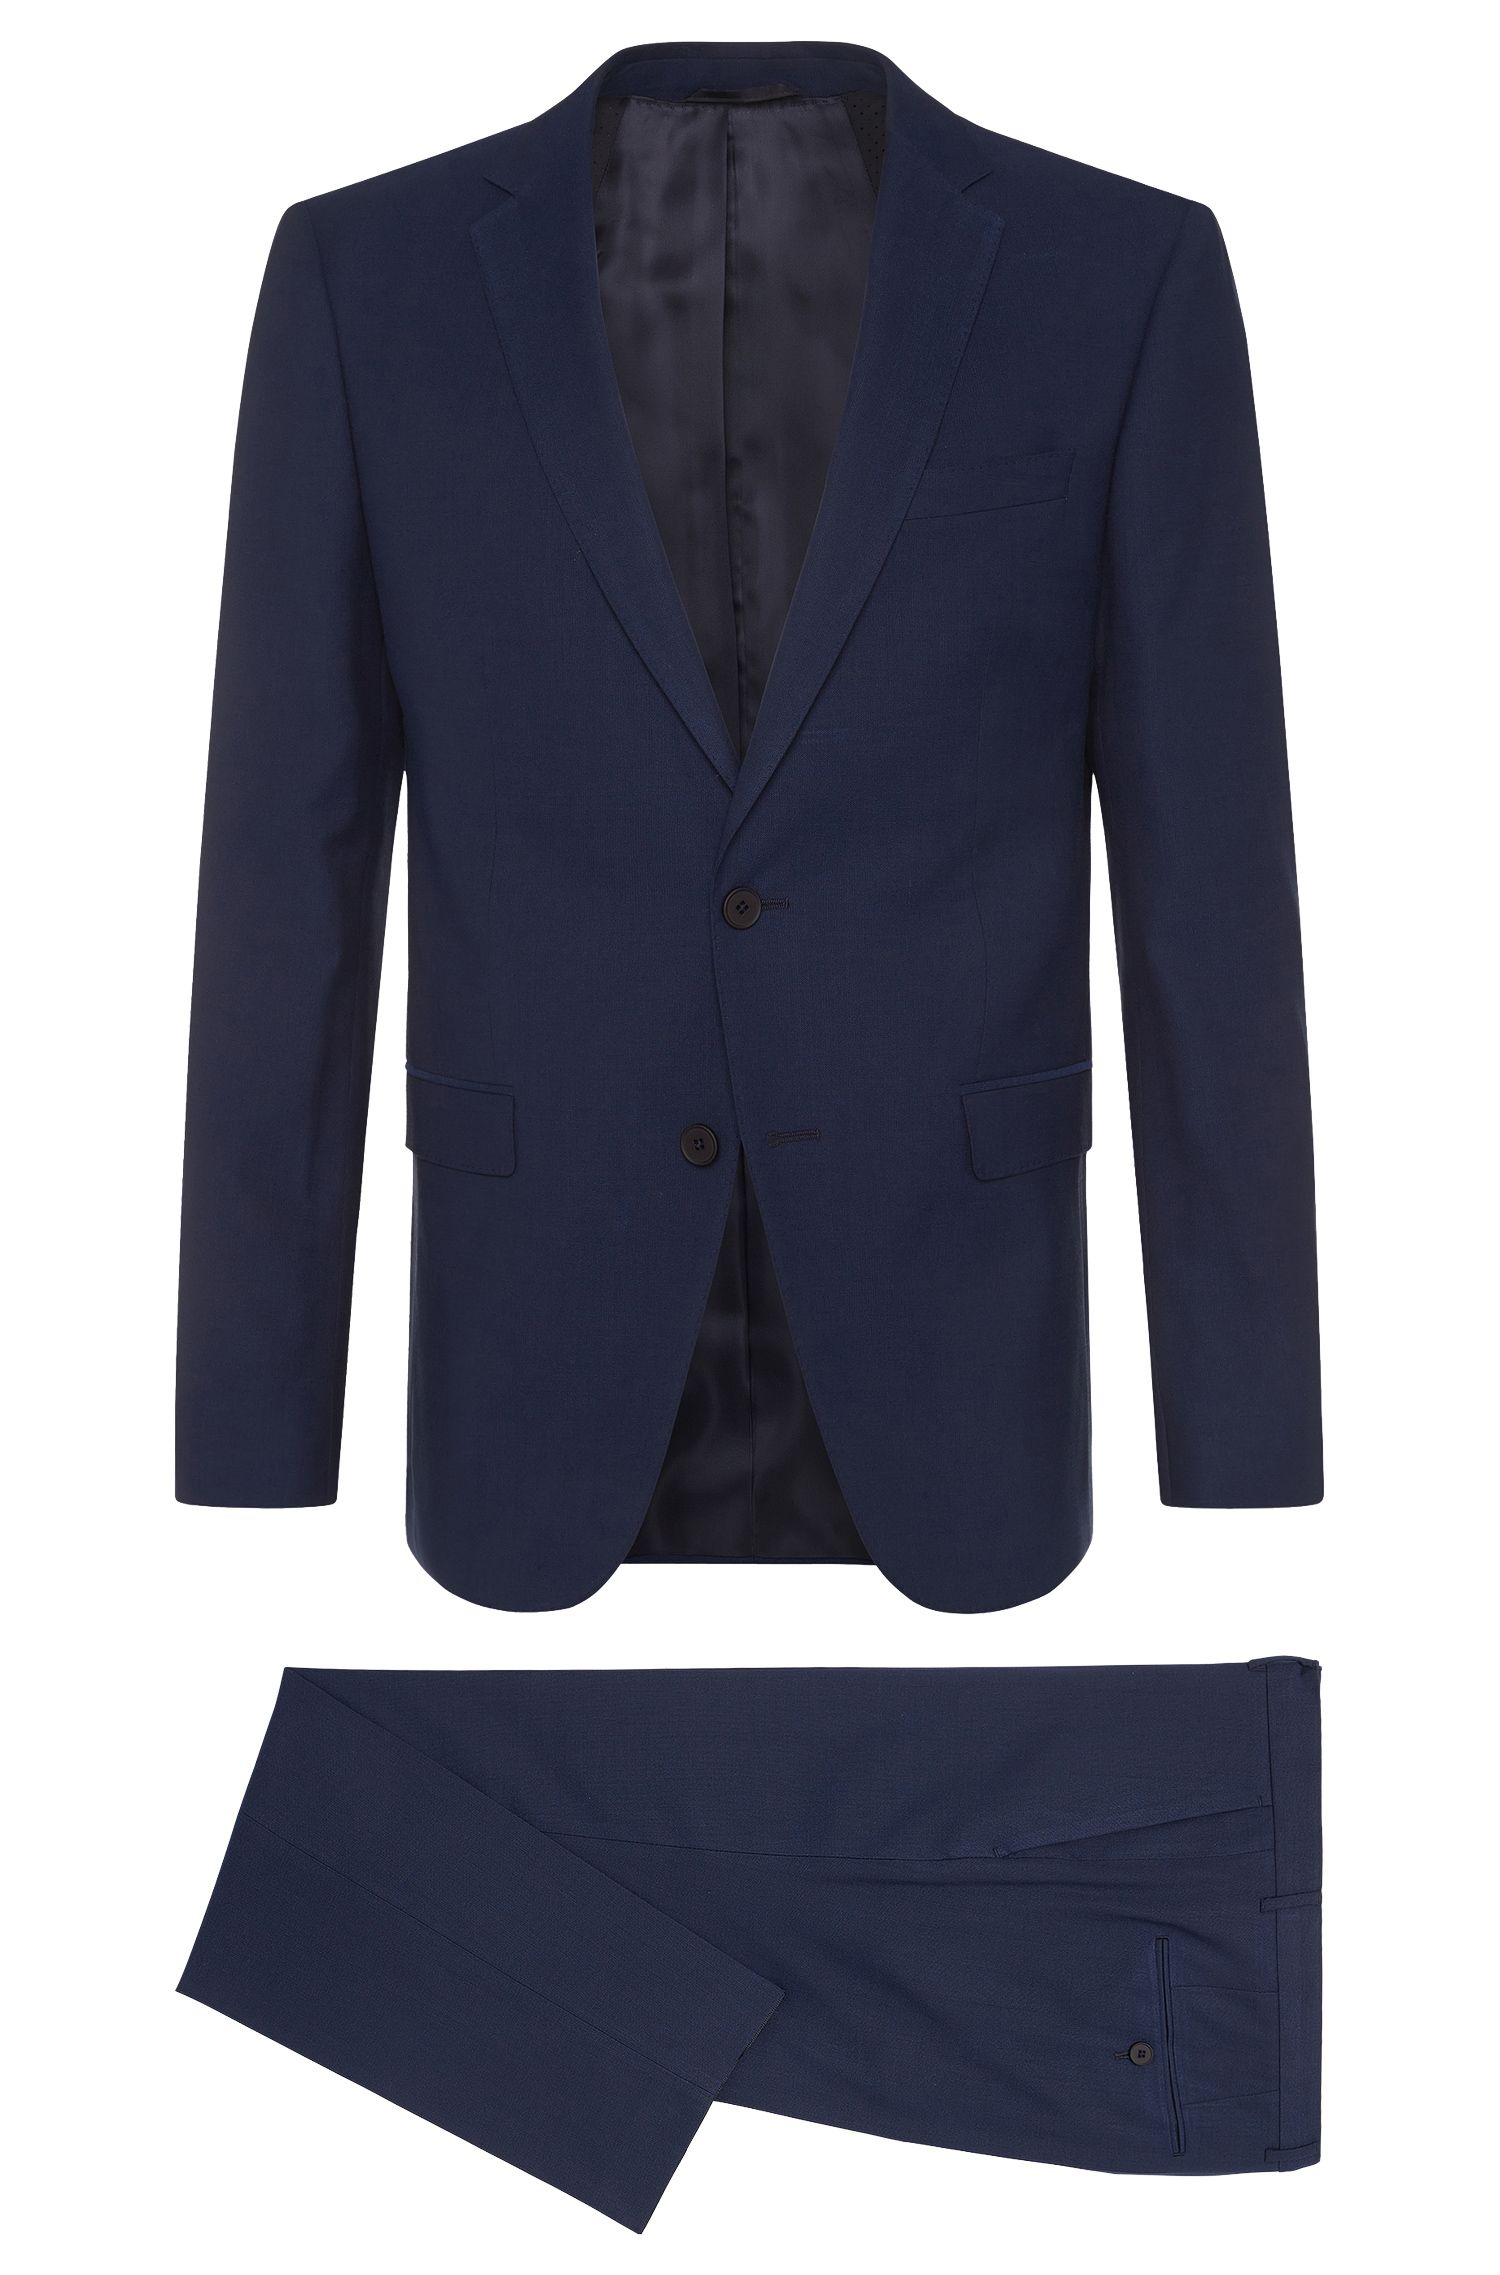 'Nestro/Byte' | Slim Fit, Stretch Wool Cotton Blend Travel Suit